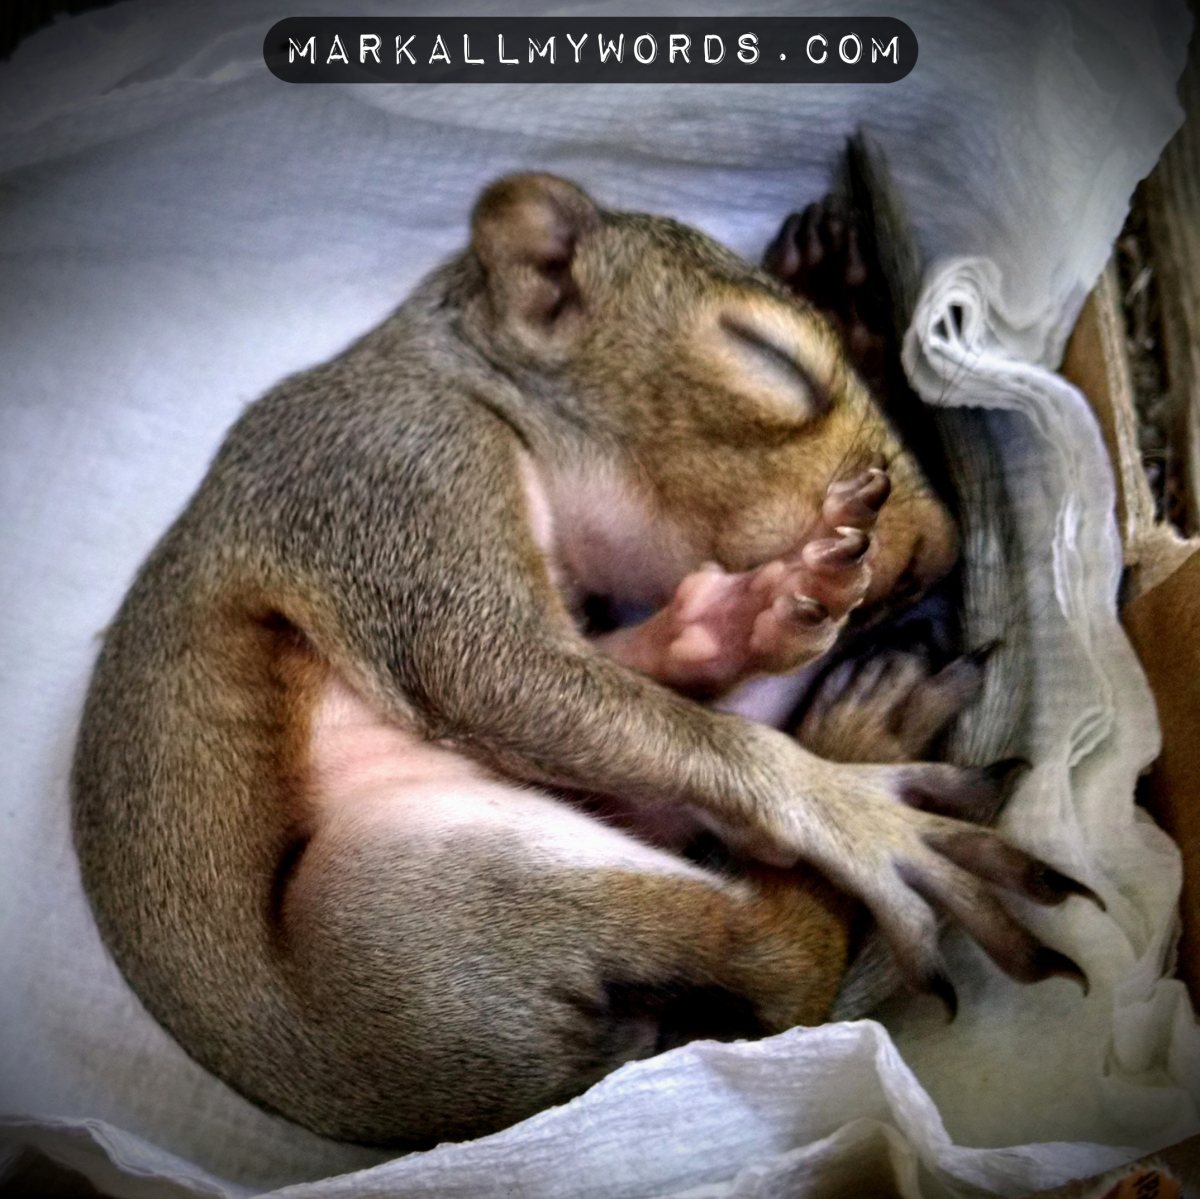 Baby squirrel sleeping and curled up in a ball